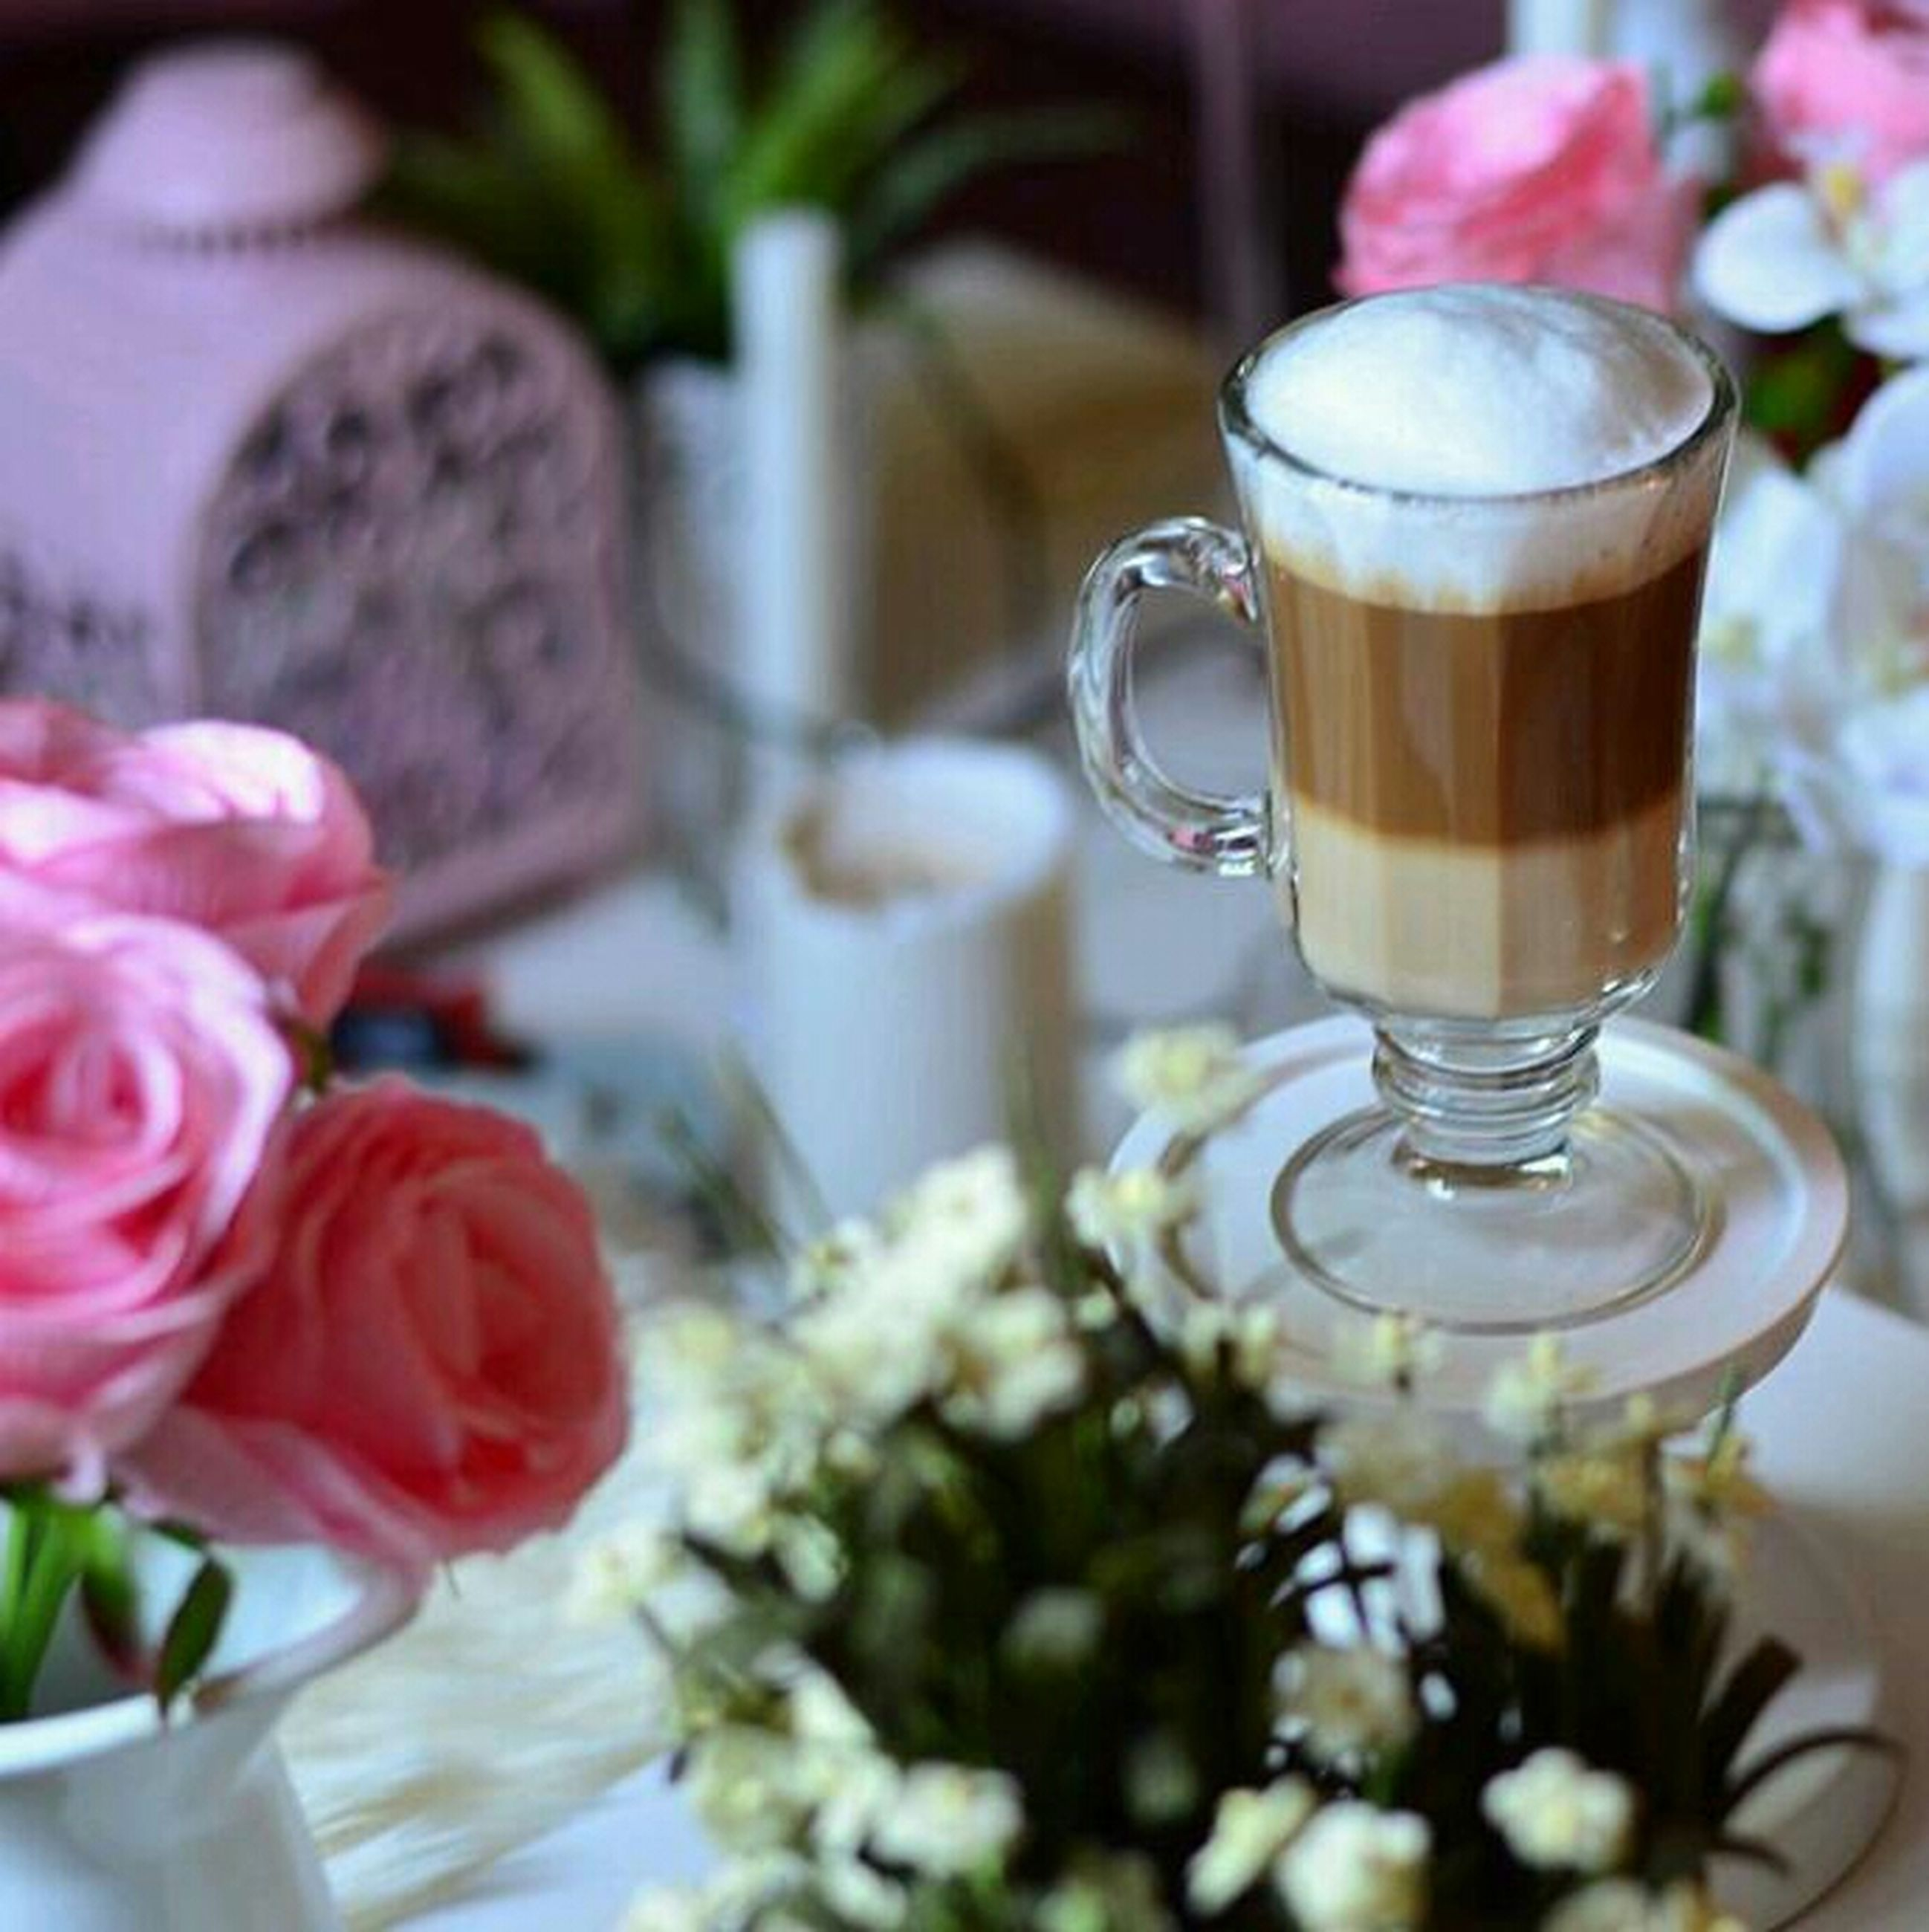 freshness, flower, indoors, drink, food and drink, refreshment, table, close-up, vase, glass - material, petal, saucer, still life, coffee cup, focus on foreground, drinking glass, fragility, cup, coffee - drink, sweet food